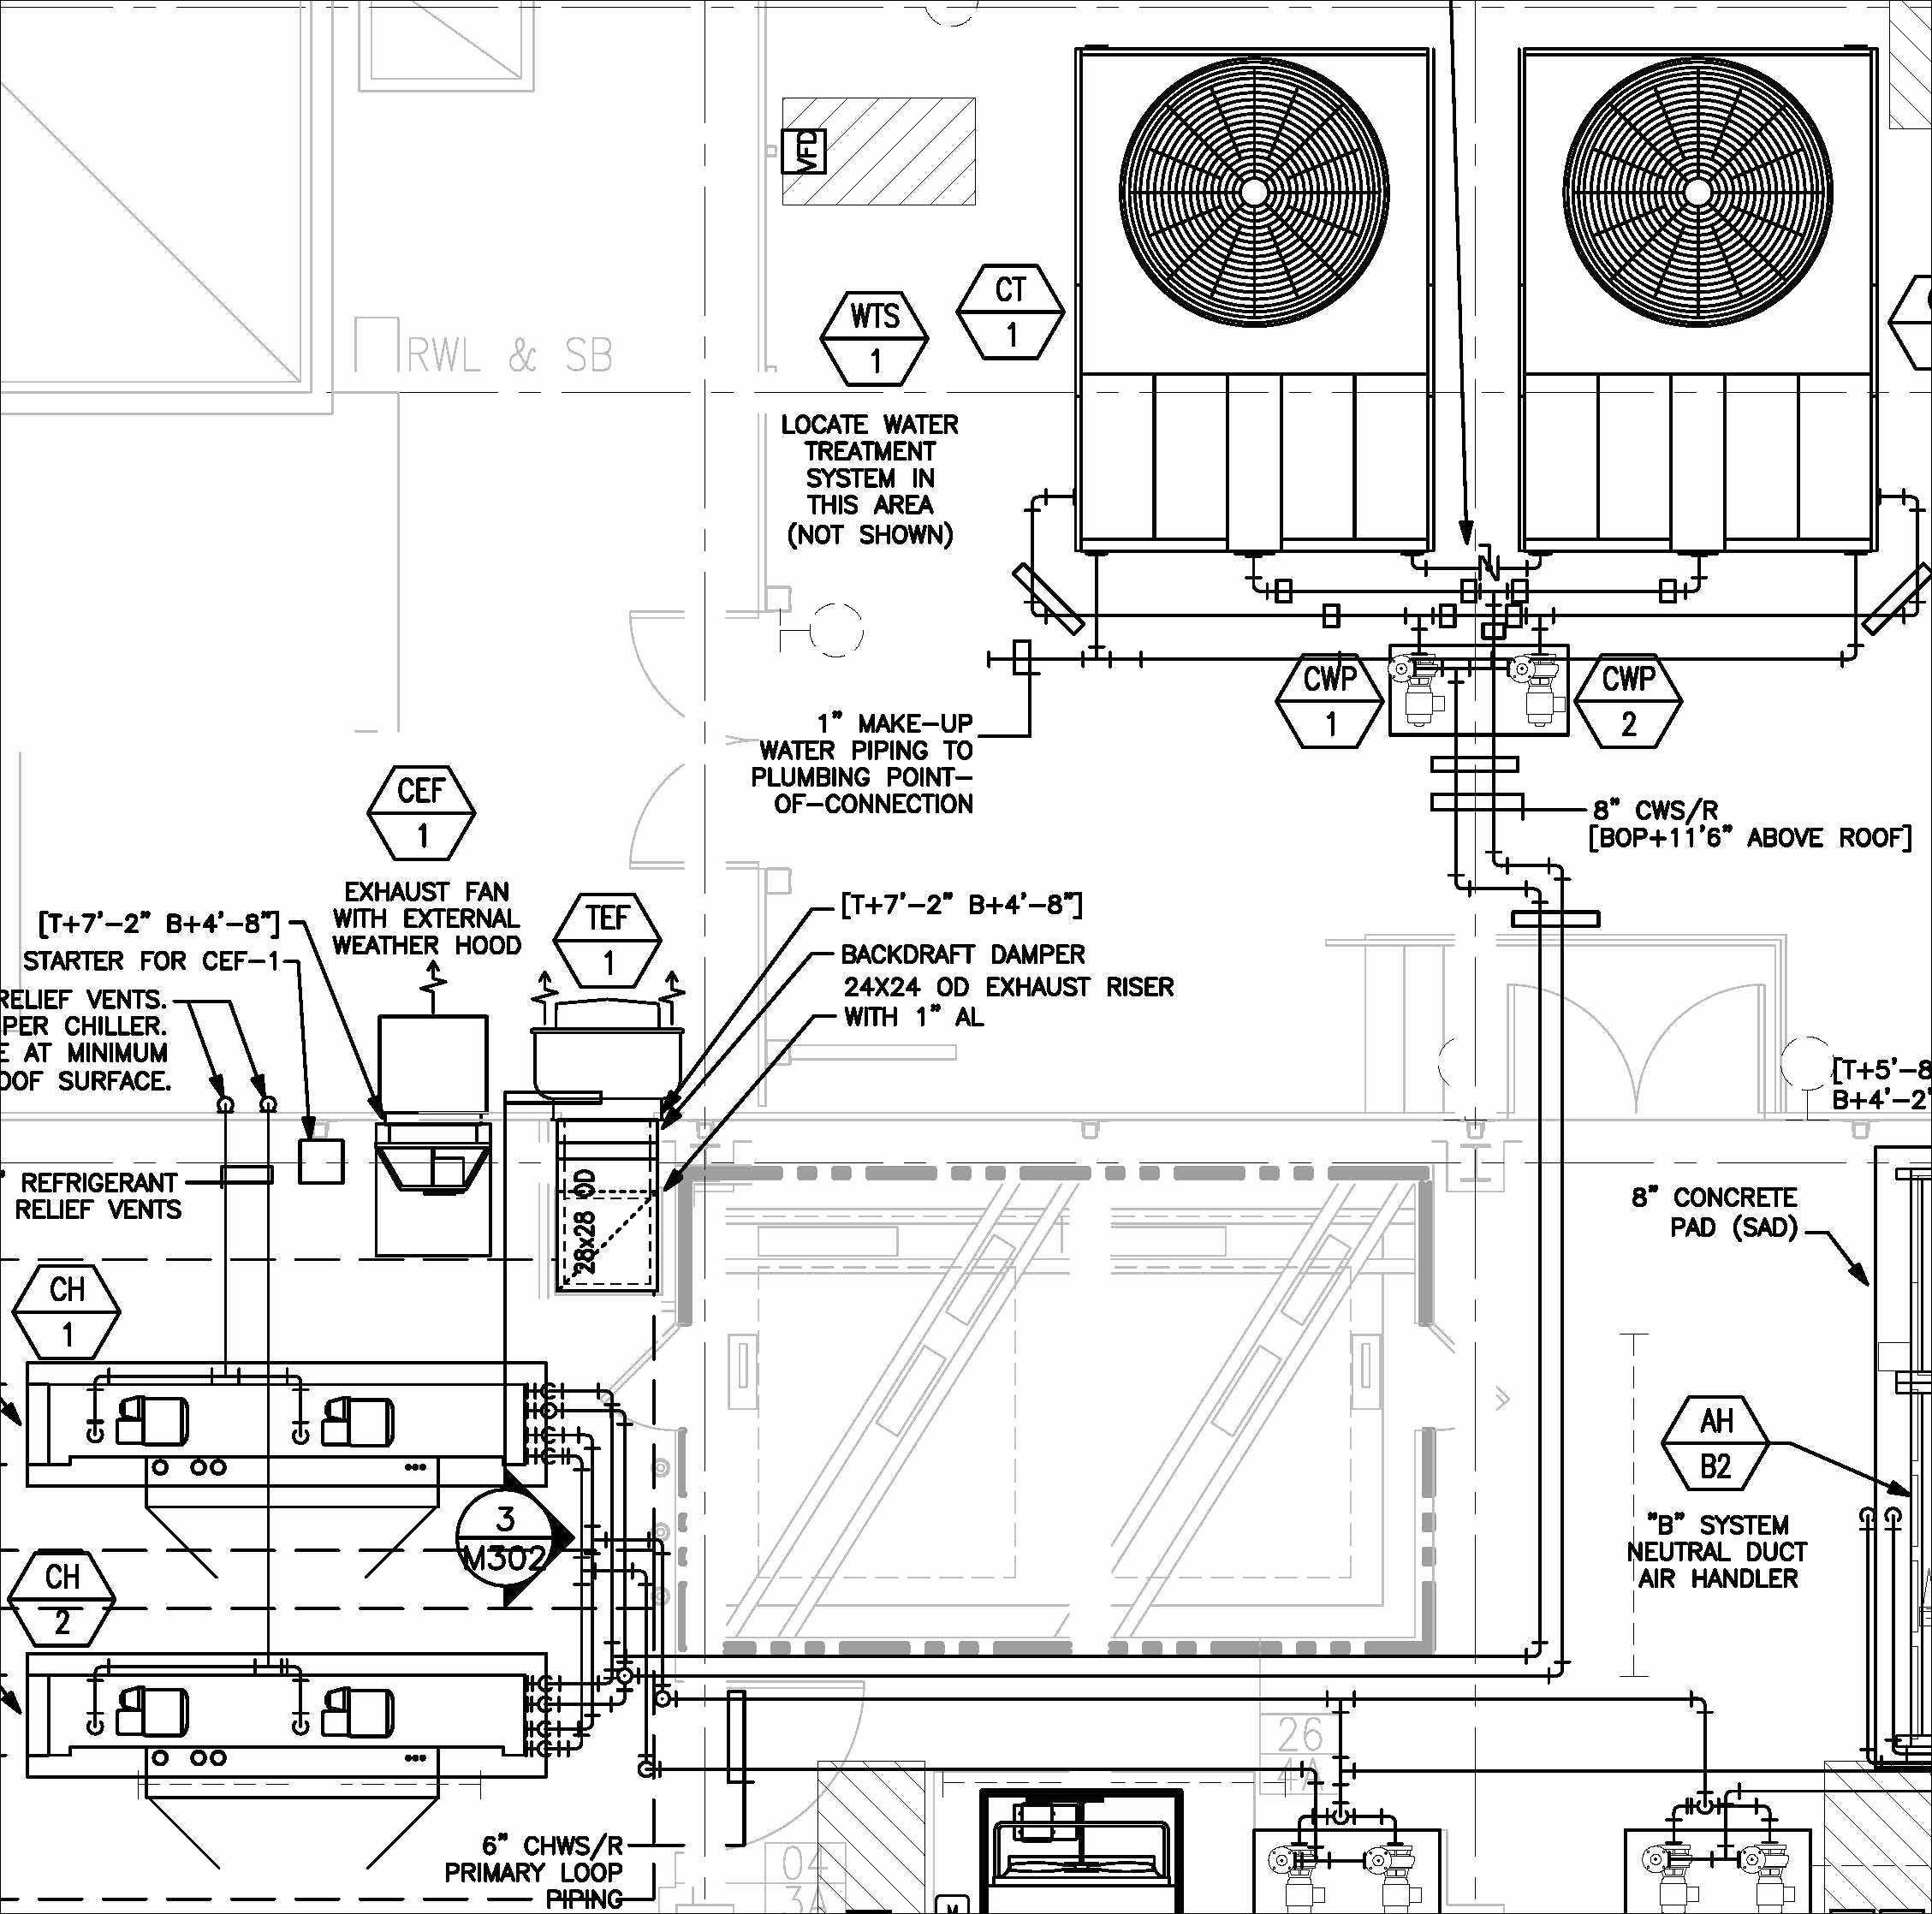 Whirlpool Washer Wiring Diagram Wiring Diagram Washing Machine New ford F250 Stereo Wiring Diagram Of Whirlpool Washer Wiring Diagram